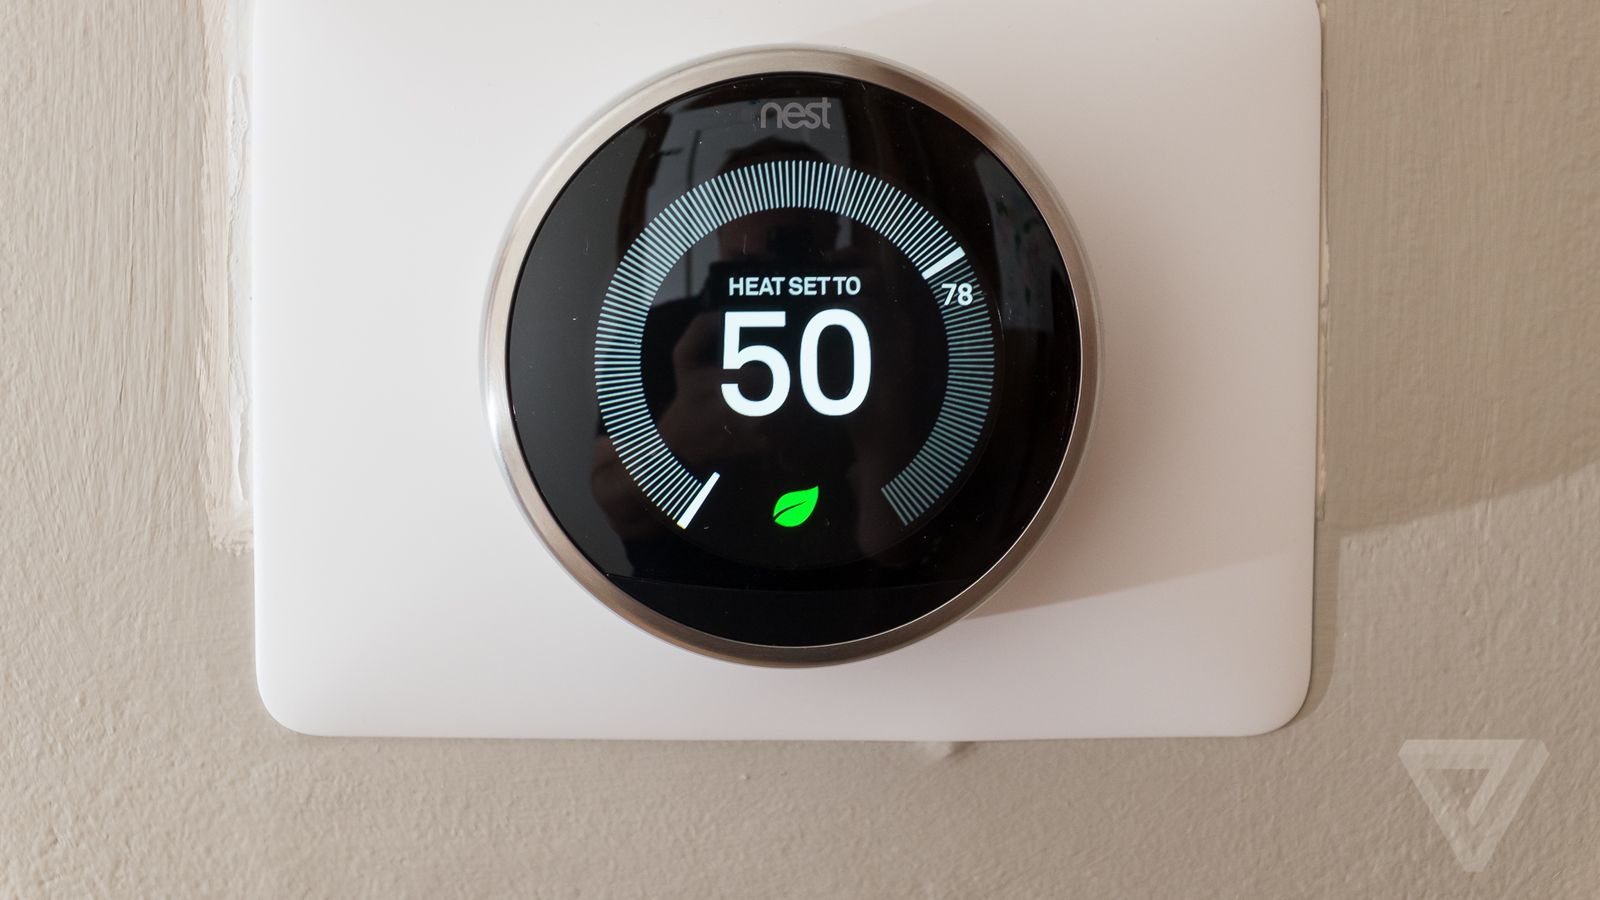 google and honeywell resolve patent dispute over nest's thermostats